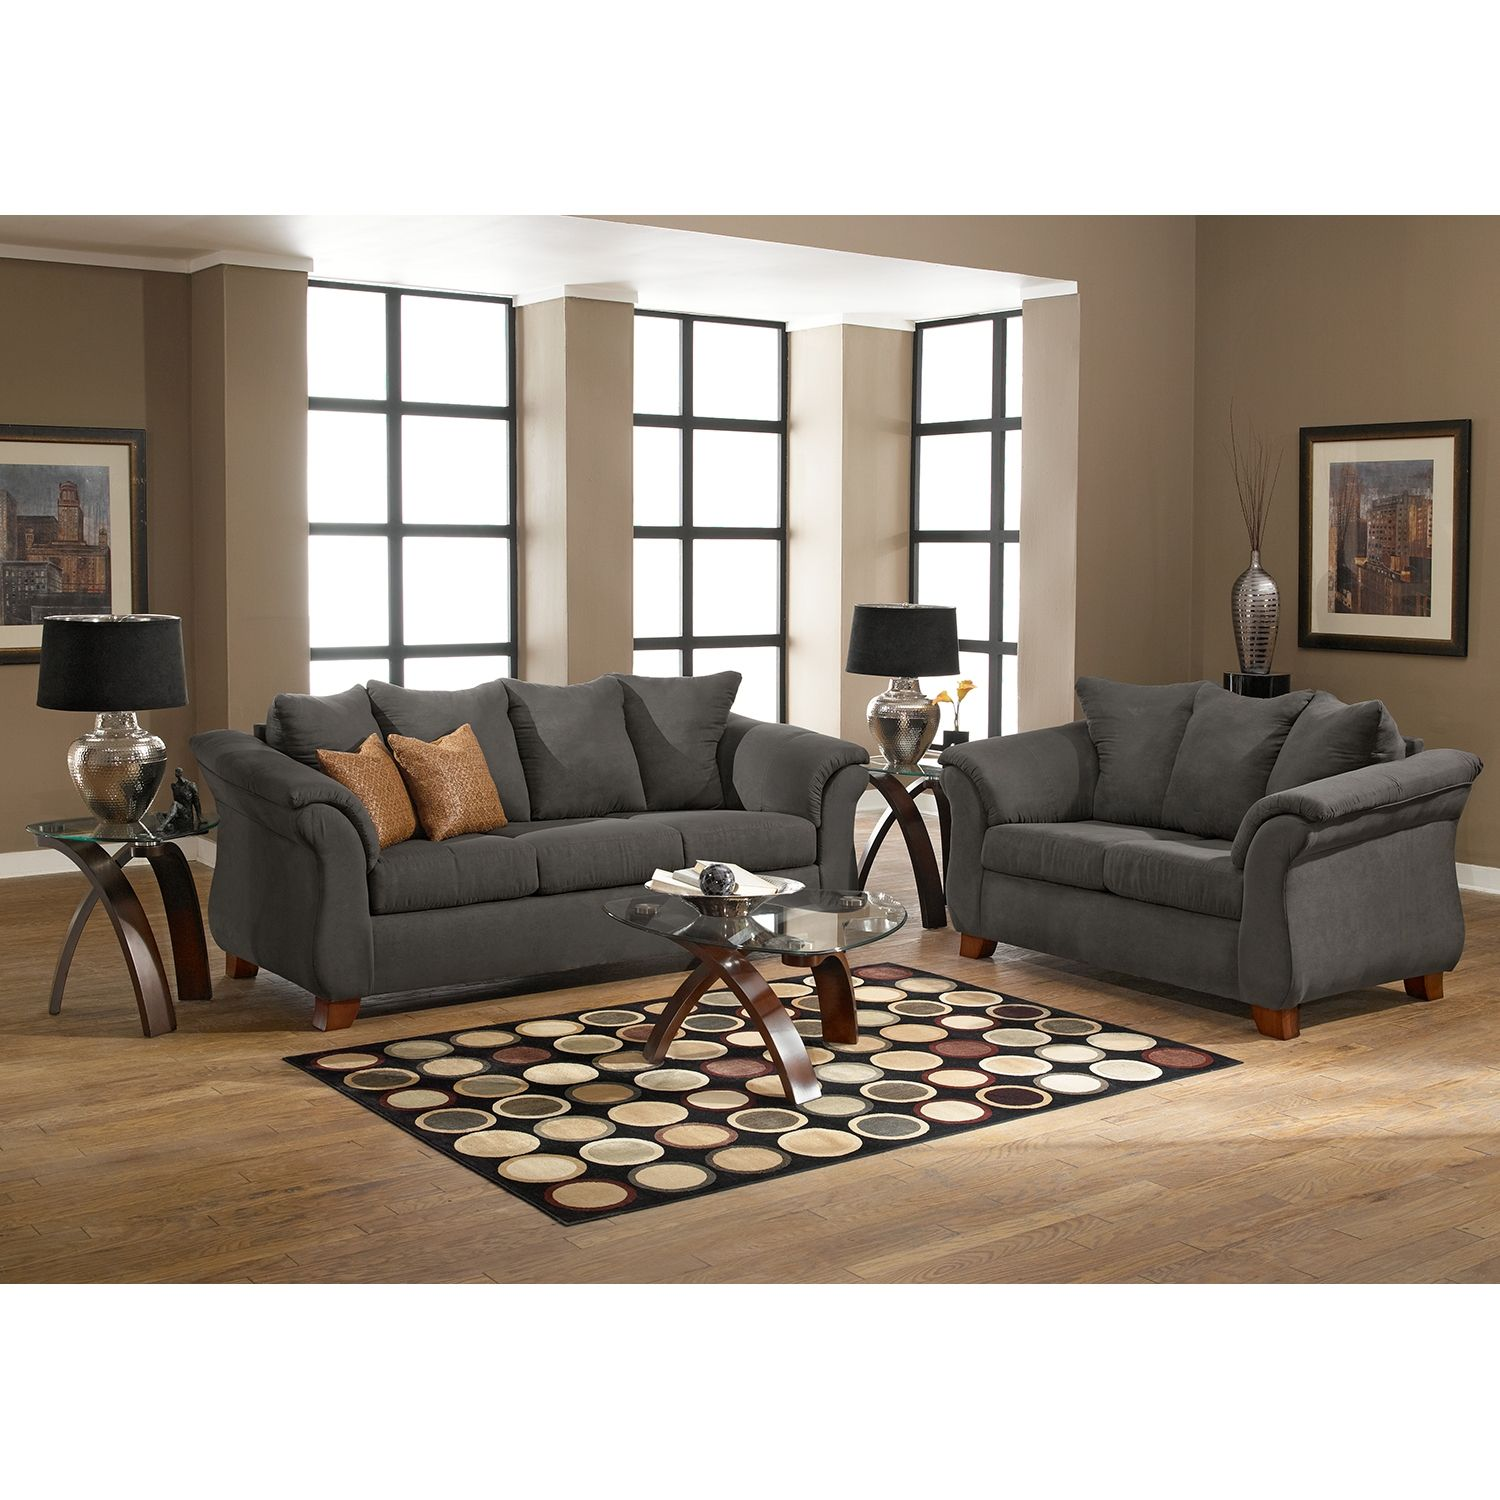 Look No Further Than The Adrian Graphite Sofa Full Offers A Semi Attached Cushion Design Which Contours To